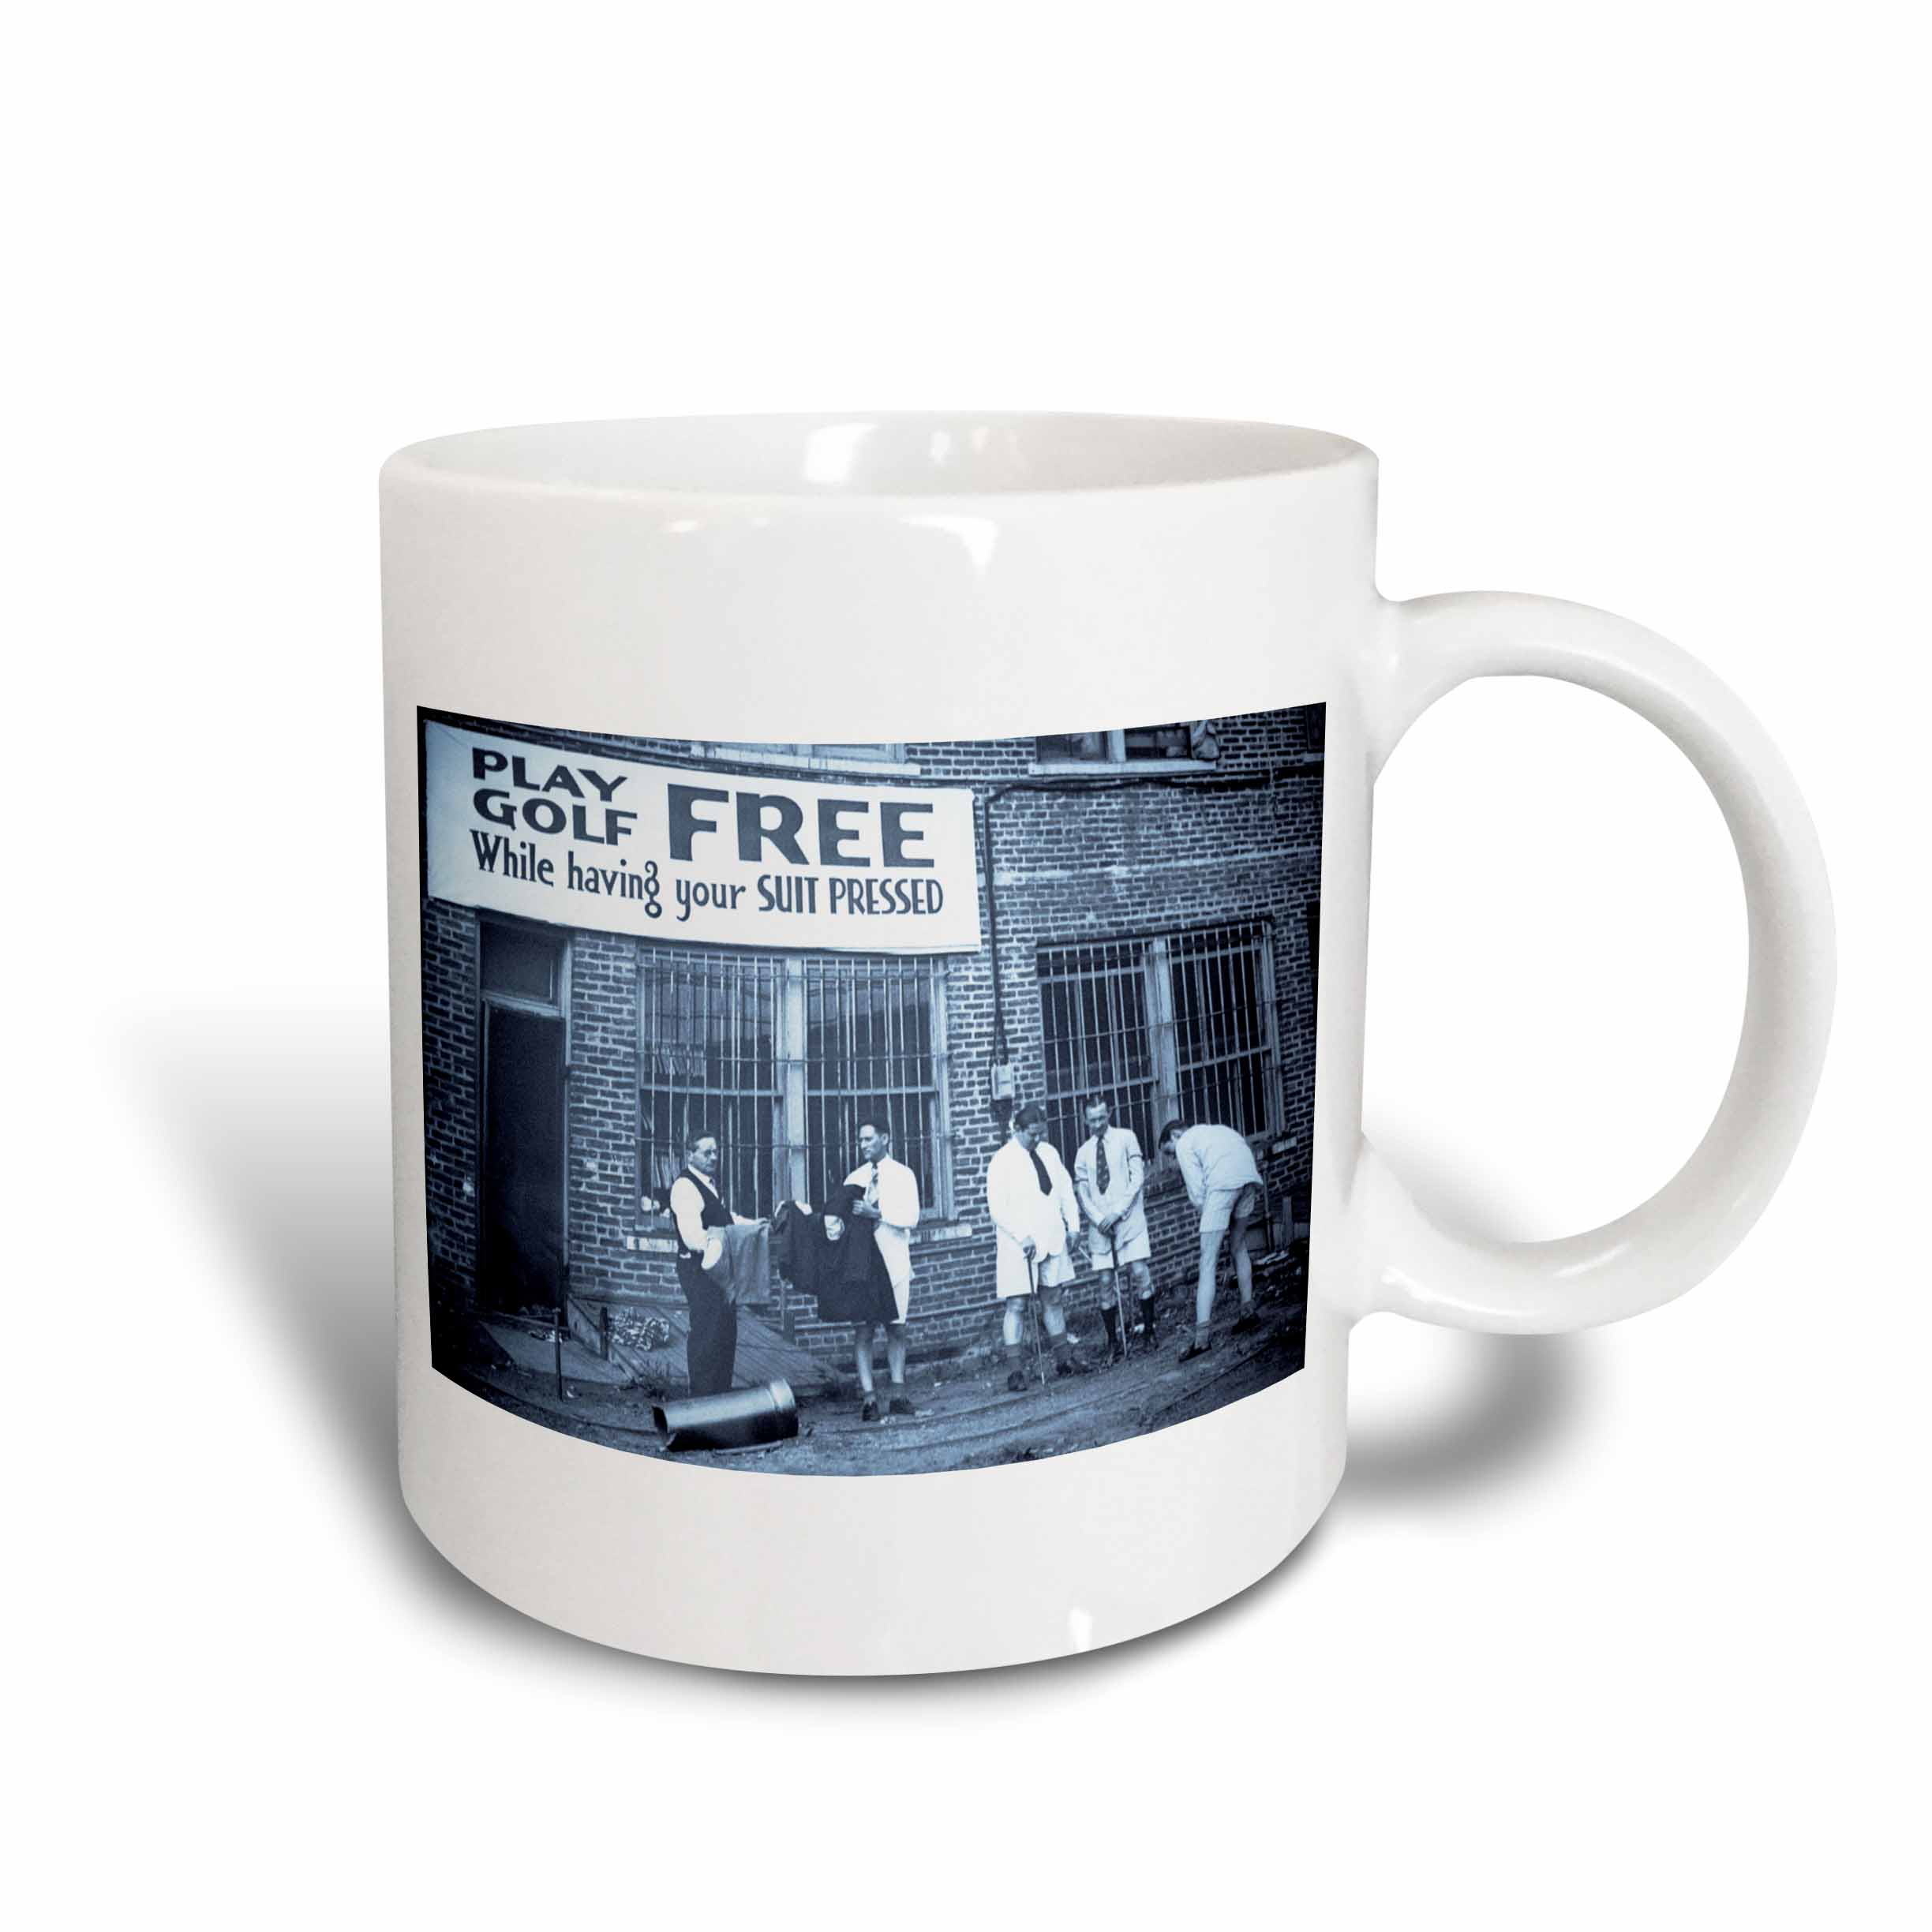 3dRose Play Golf Free While Having Your Suit Pressed Cyan tone, Ceramic Mug, 15-ounce